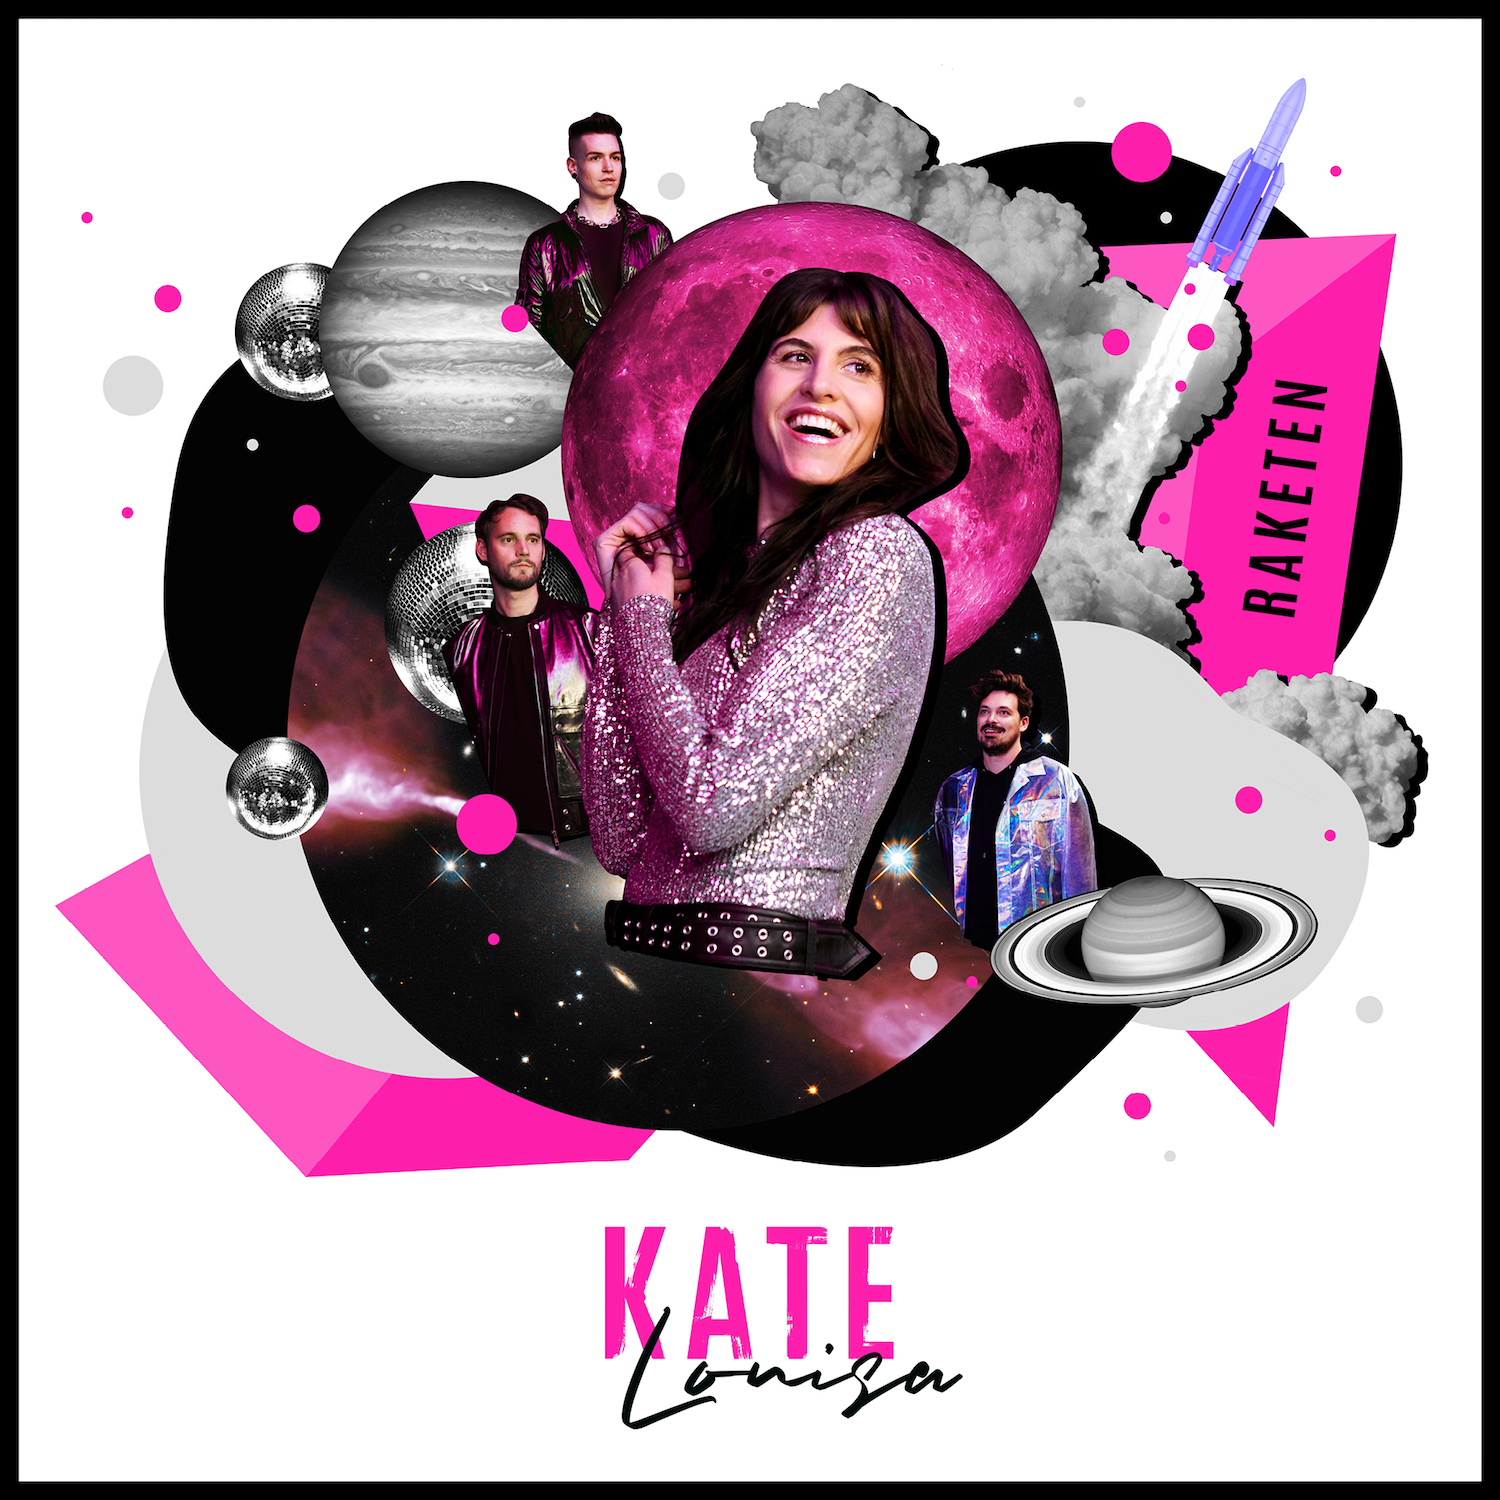 "KATE LOUISA ""Raketen"" (Single) VÖ: 09.10.20"